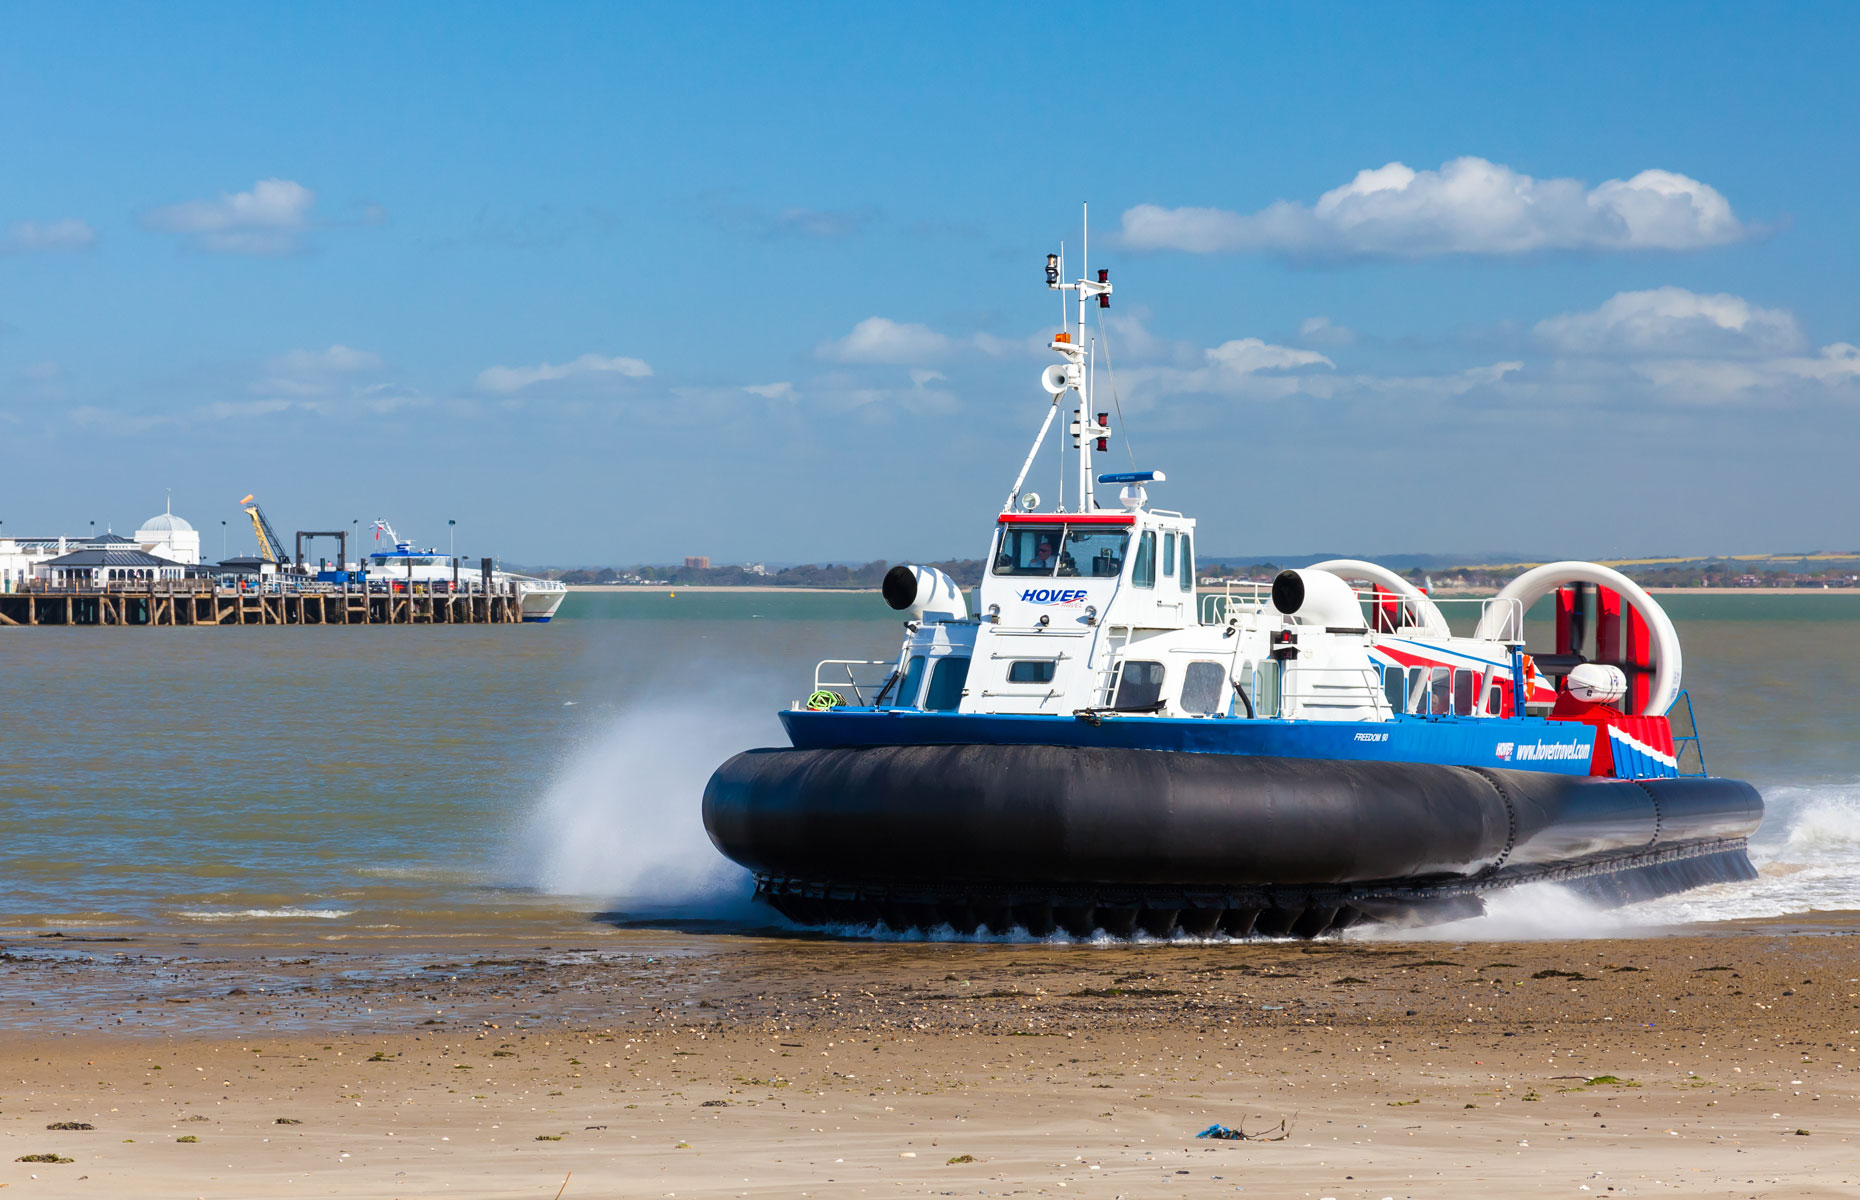 Taking the Hovercraft to the Isle of Wight is an adventure in itself